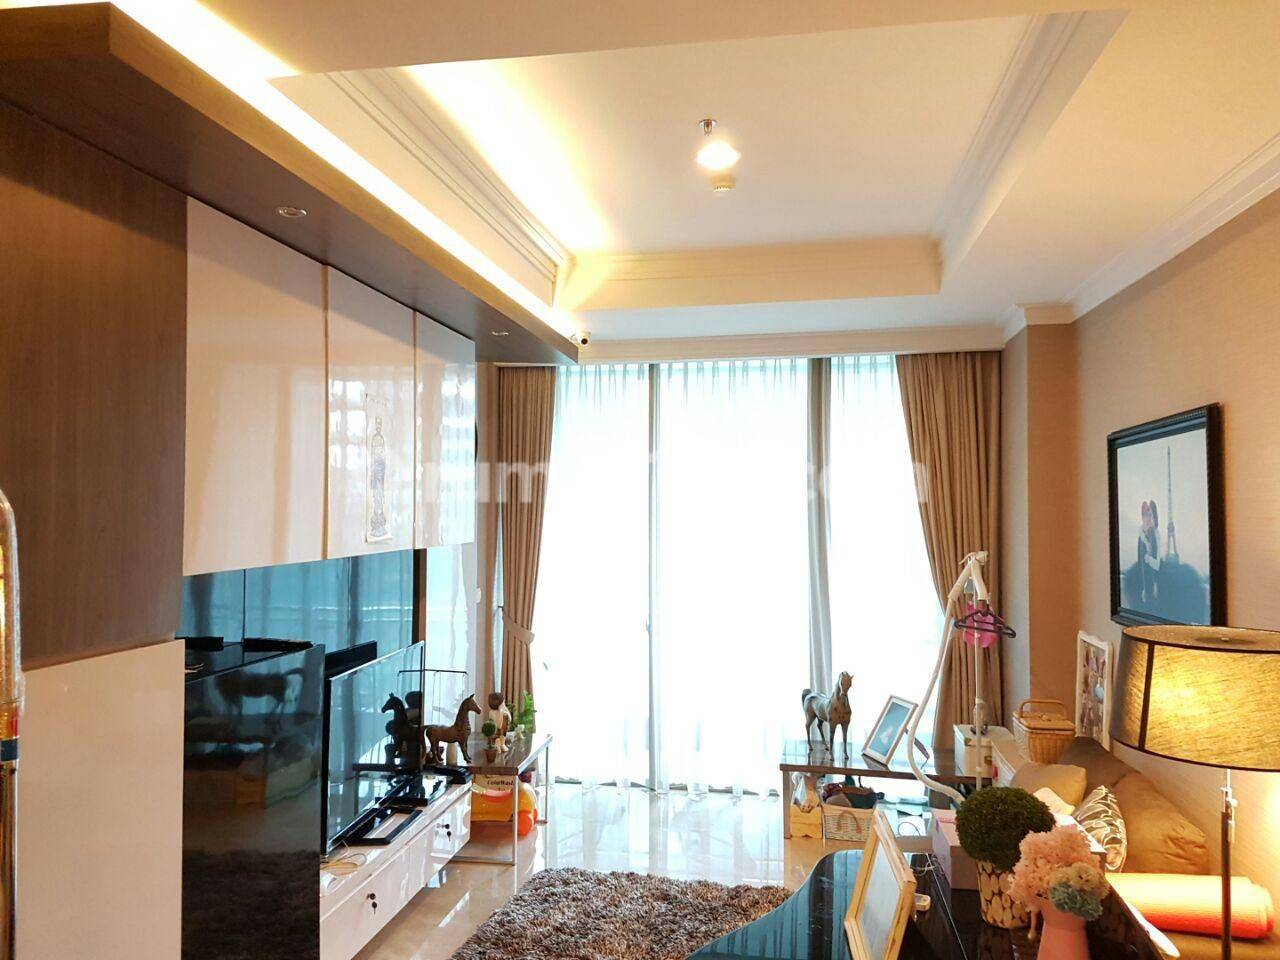 Apartemen Residence 8 - Type 2 Bedroom & Full Furnished By Sava Jakarta Properti APT-A2126